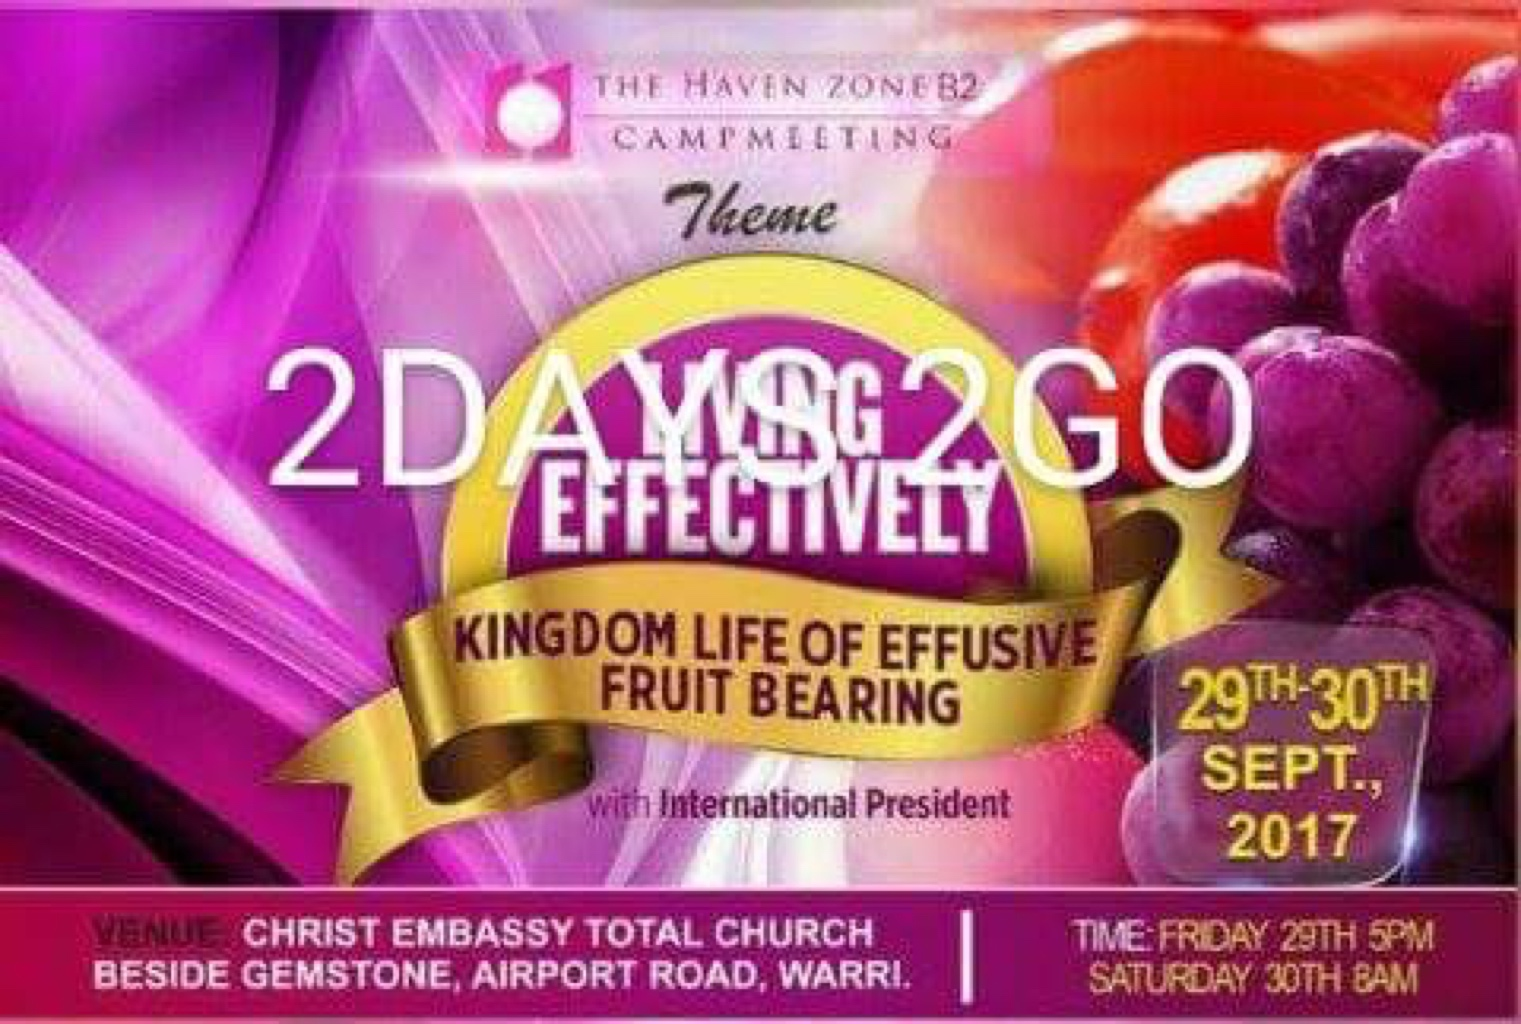 HOW READY ARE U??? #havenB2campmeeting